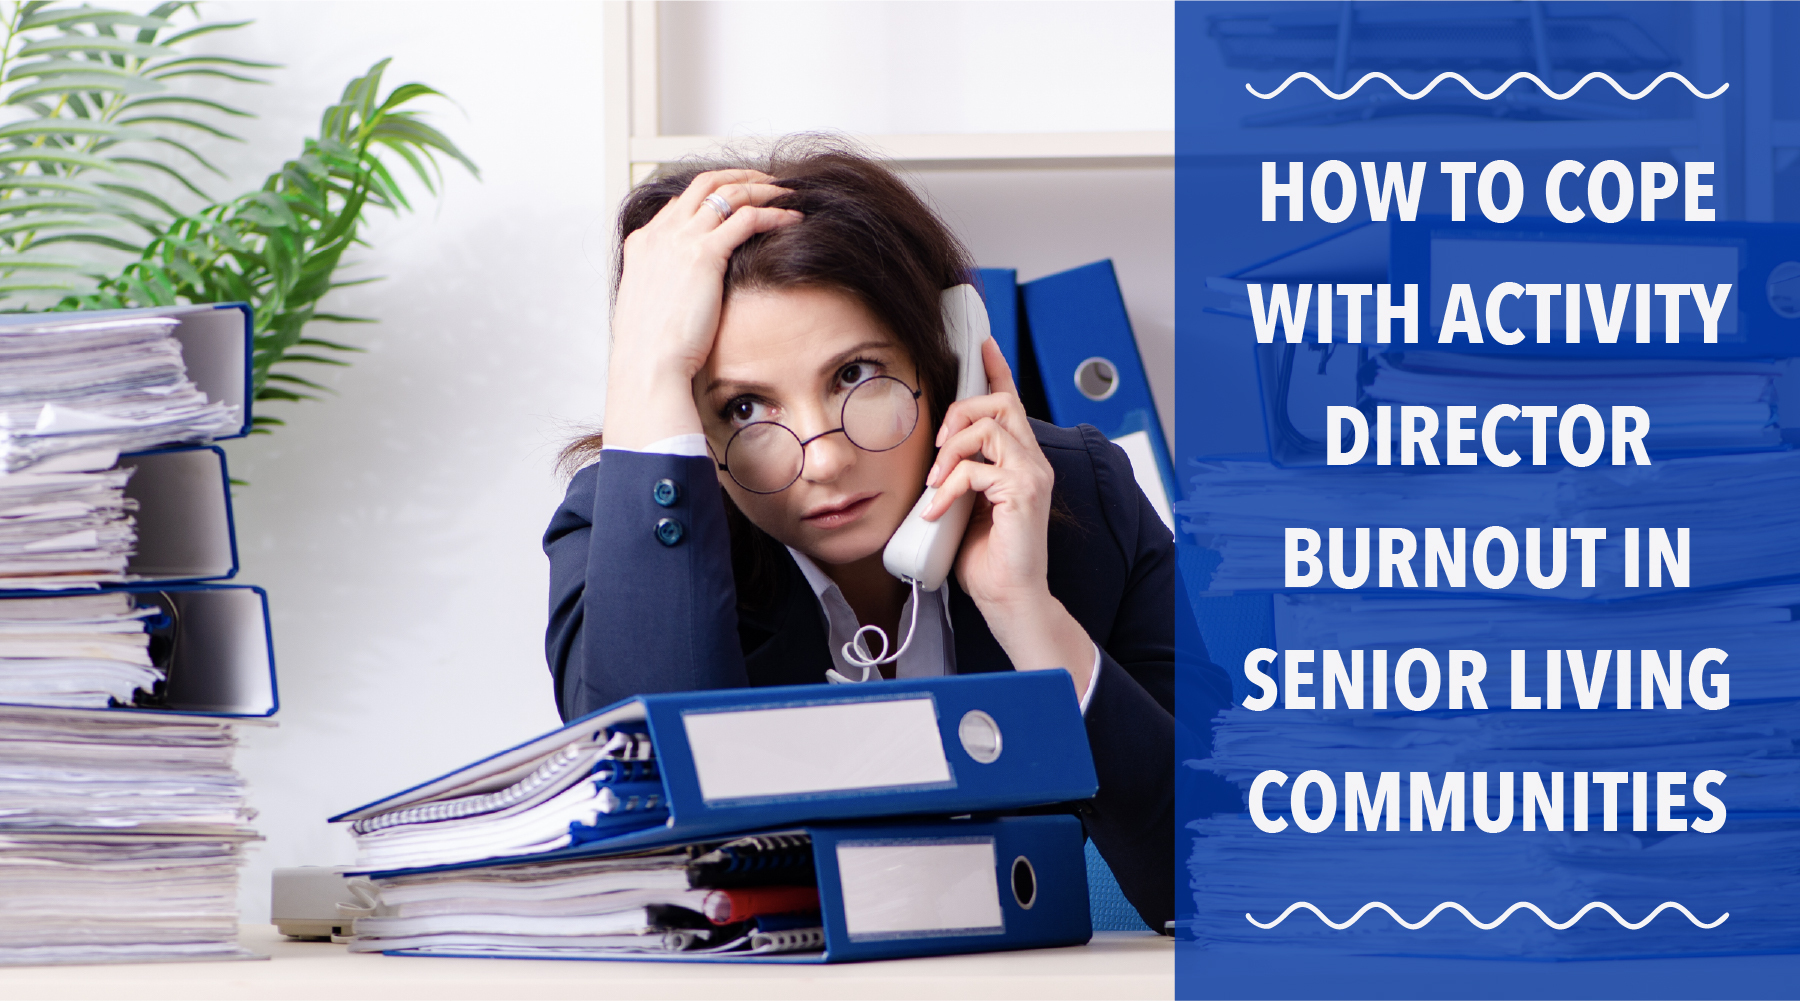 How to Cope with Activity Director Burnout in Senior Living Communities